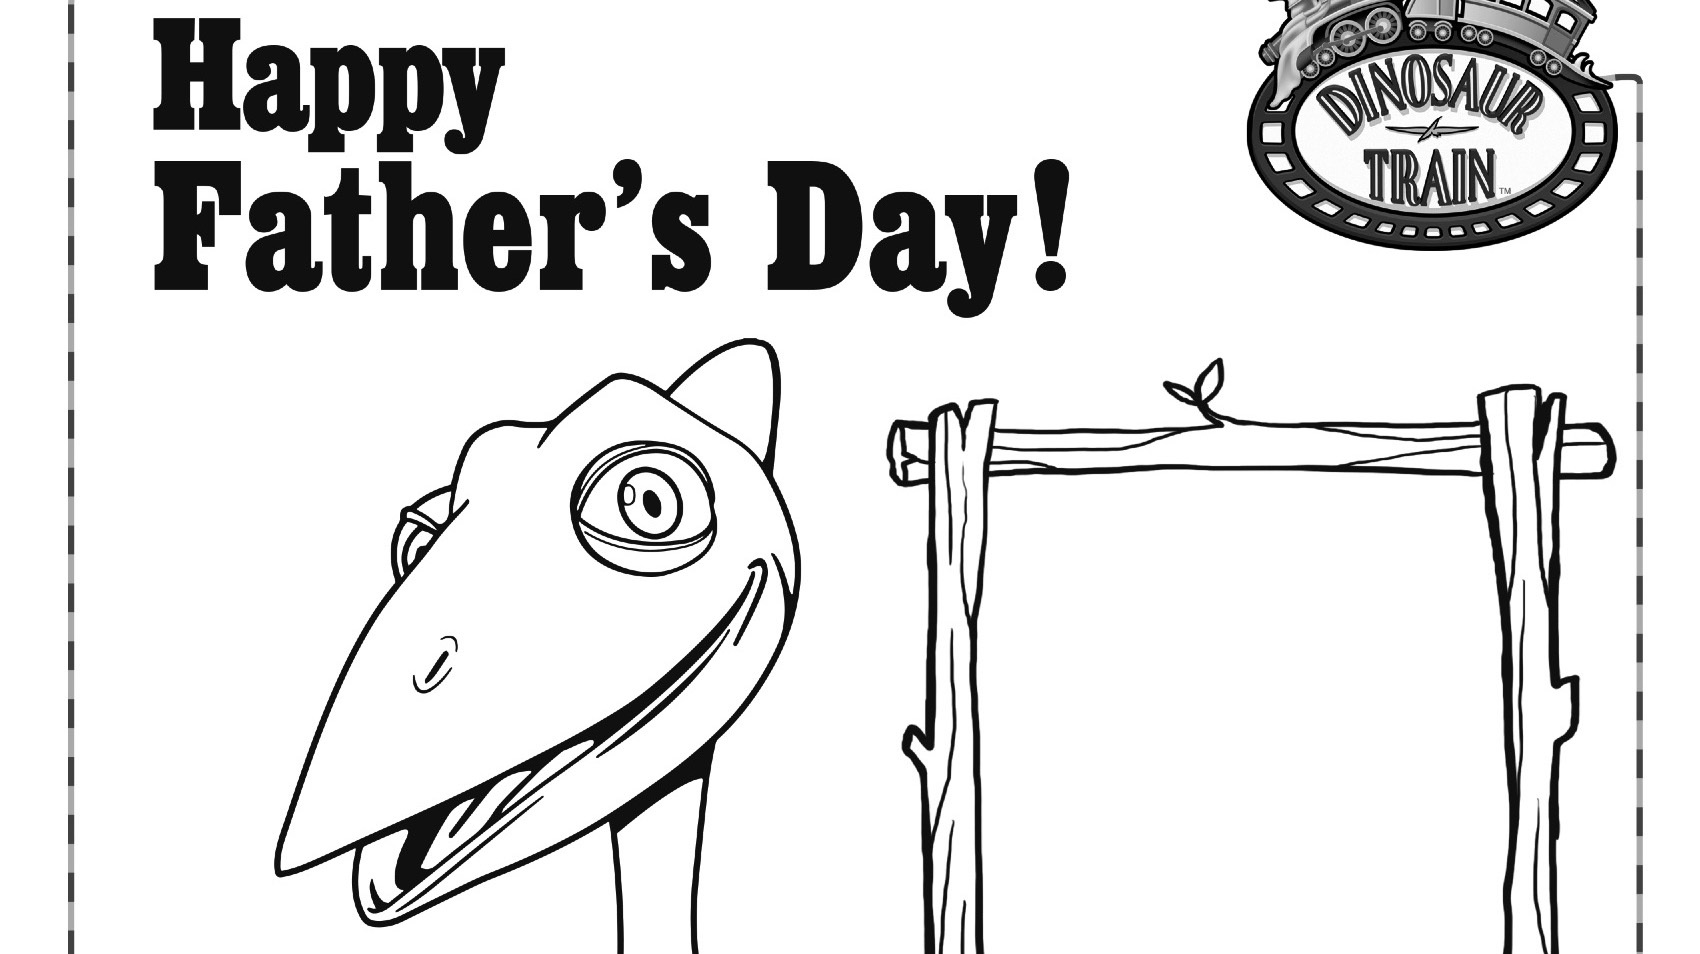 happy fathers coloring kids pbs for parents fathersday mezz wild watermelon marionette by coloring pages Happy Fathers Day Coloring Page